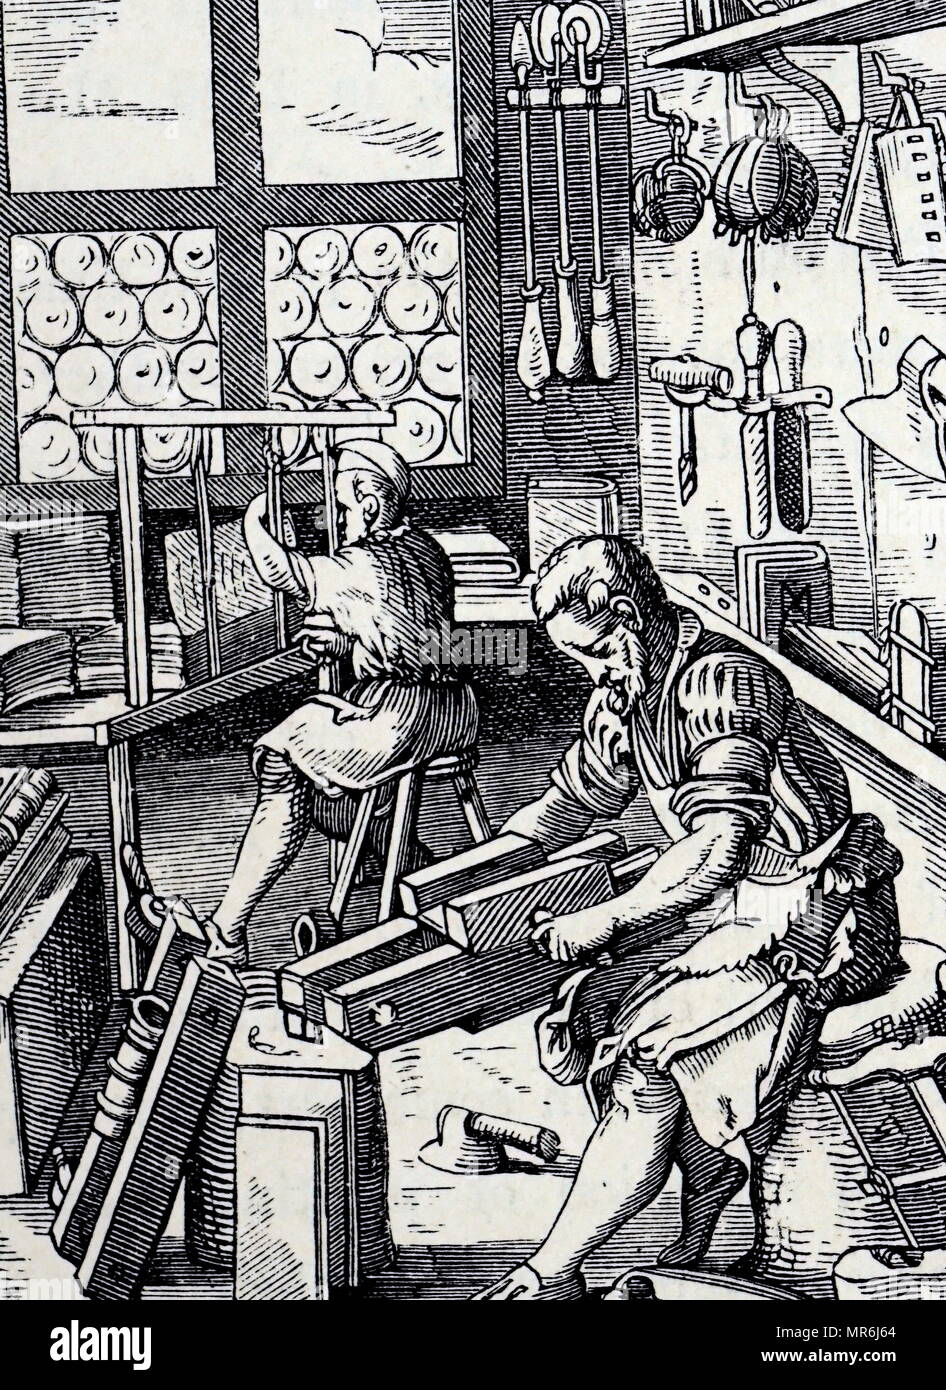 Woodcut engraving depicting a bookbinder's workshop by Jost Amman. Jost  Amman (1539-1591) a Swiss-German artist. Dated 16th century